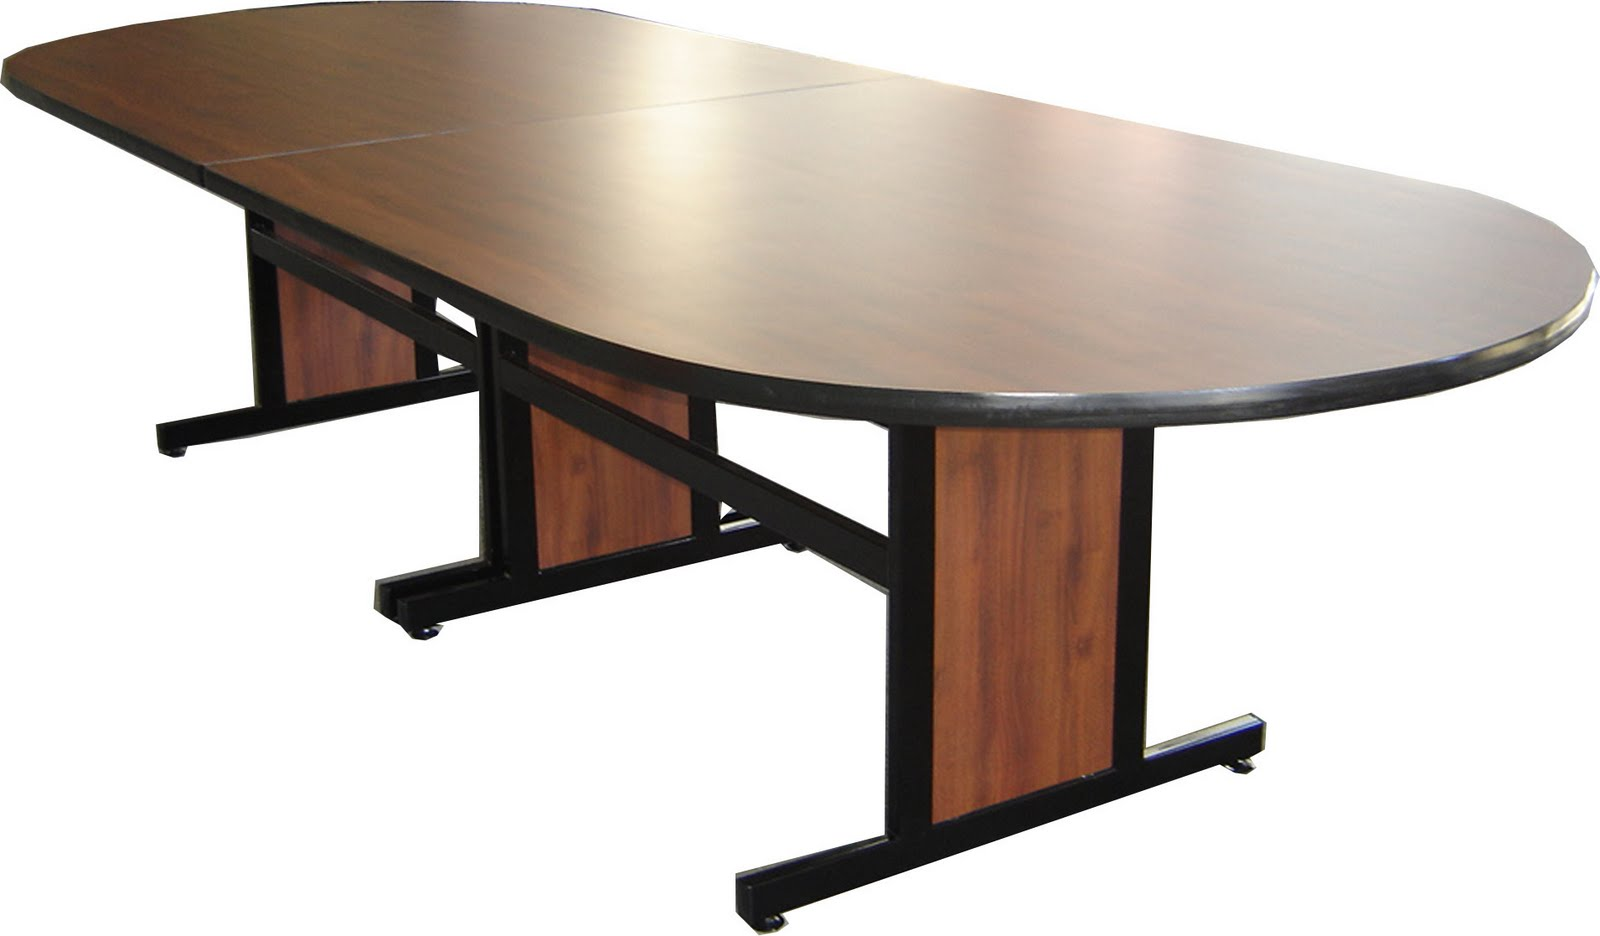 Imported Furniture L Shaped fice Desk